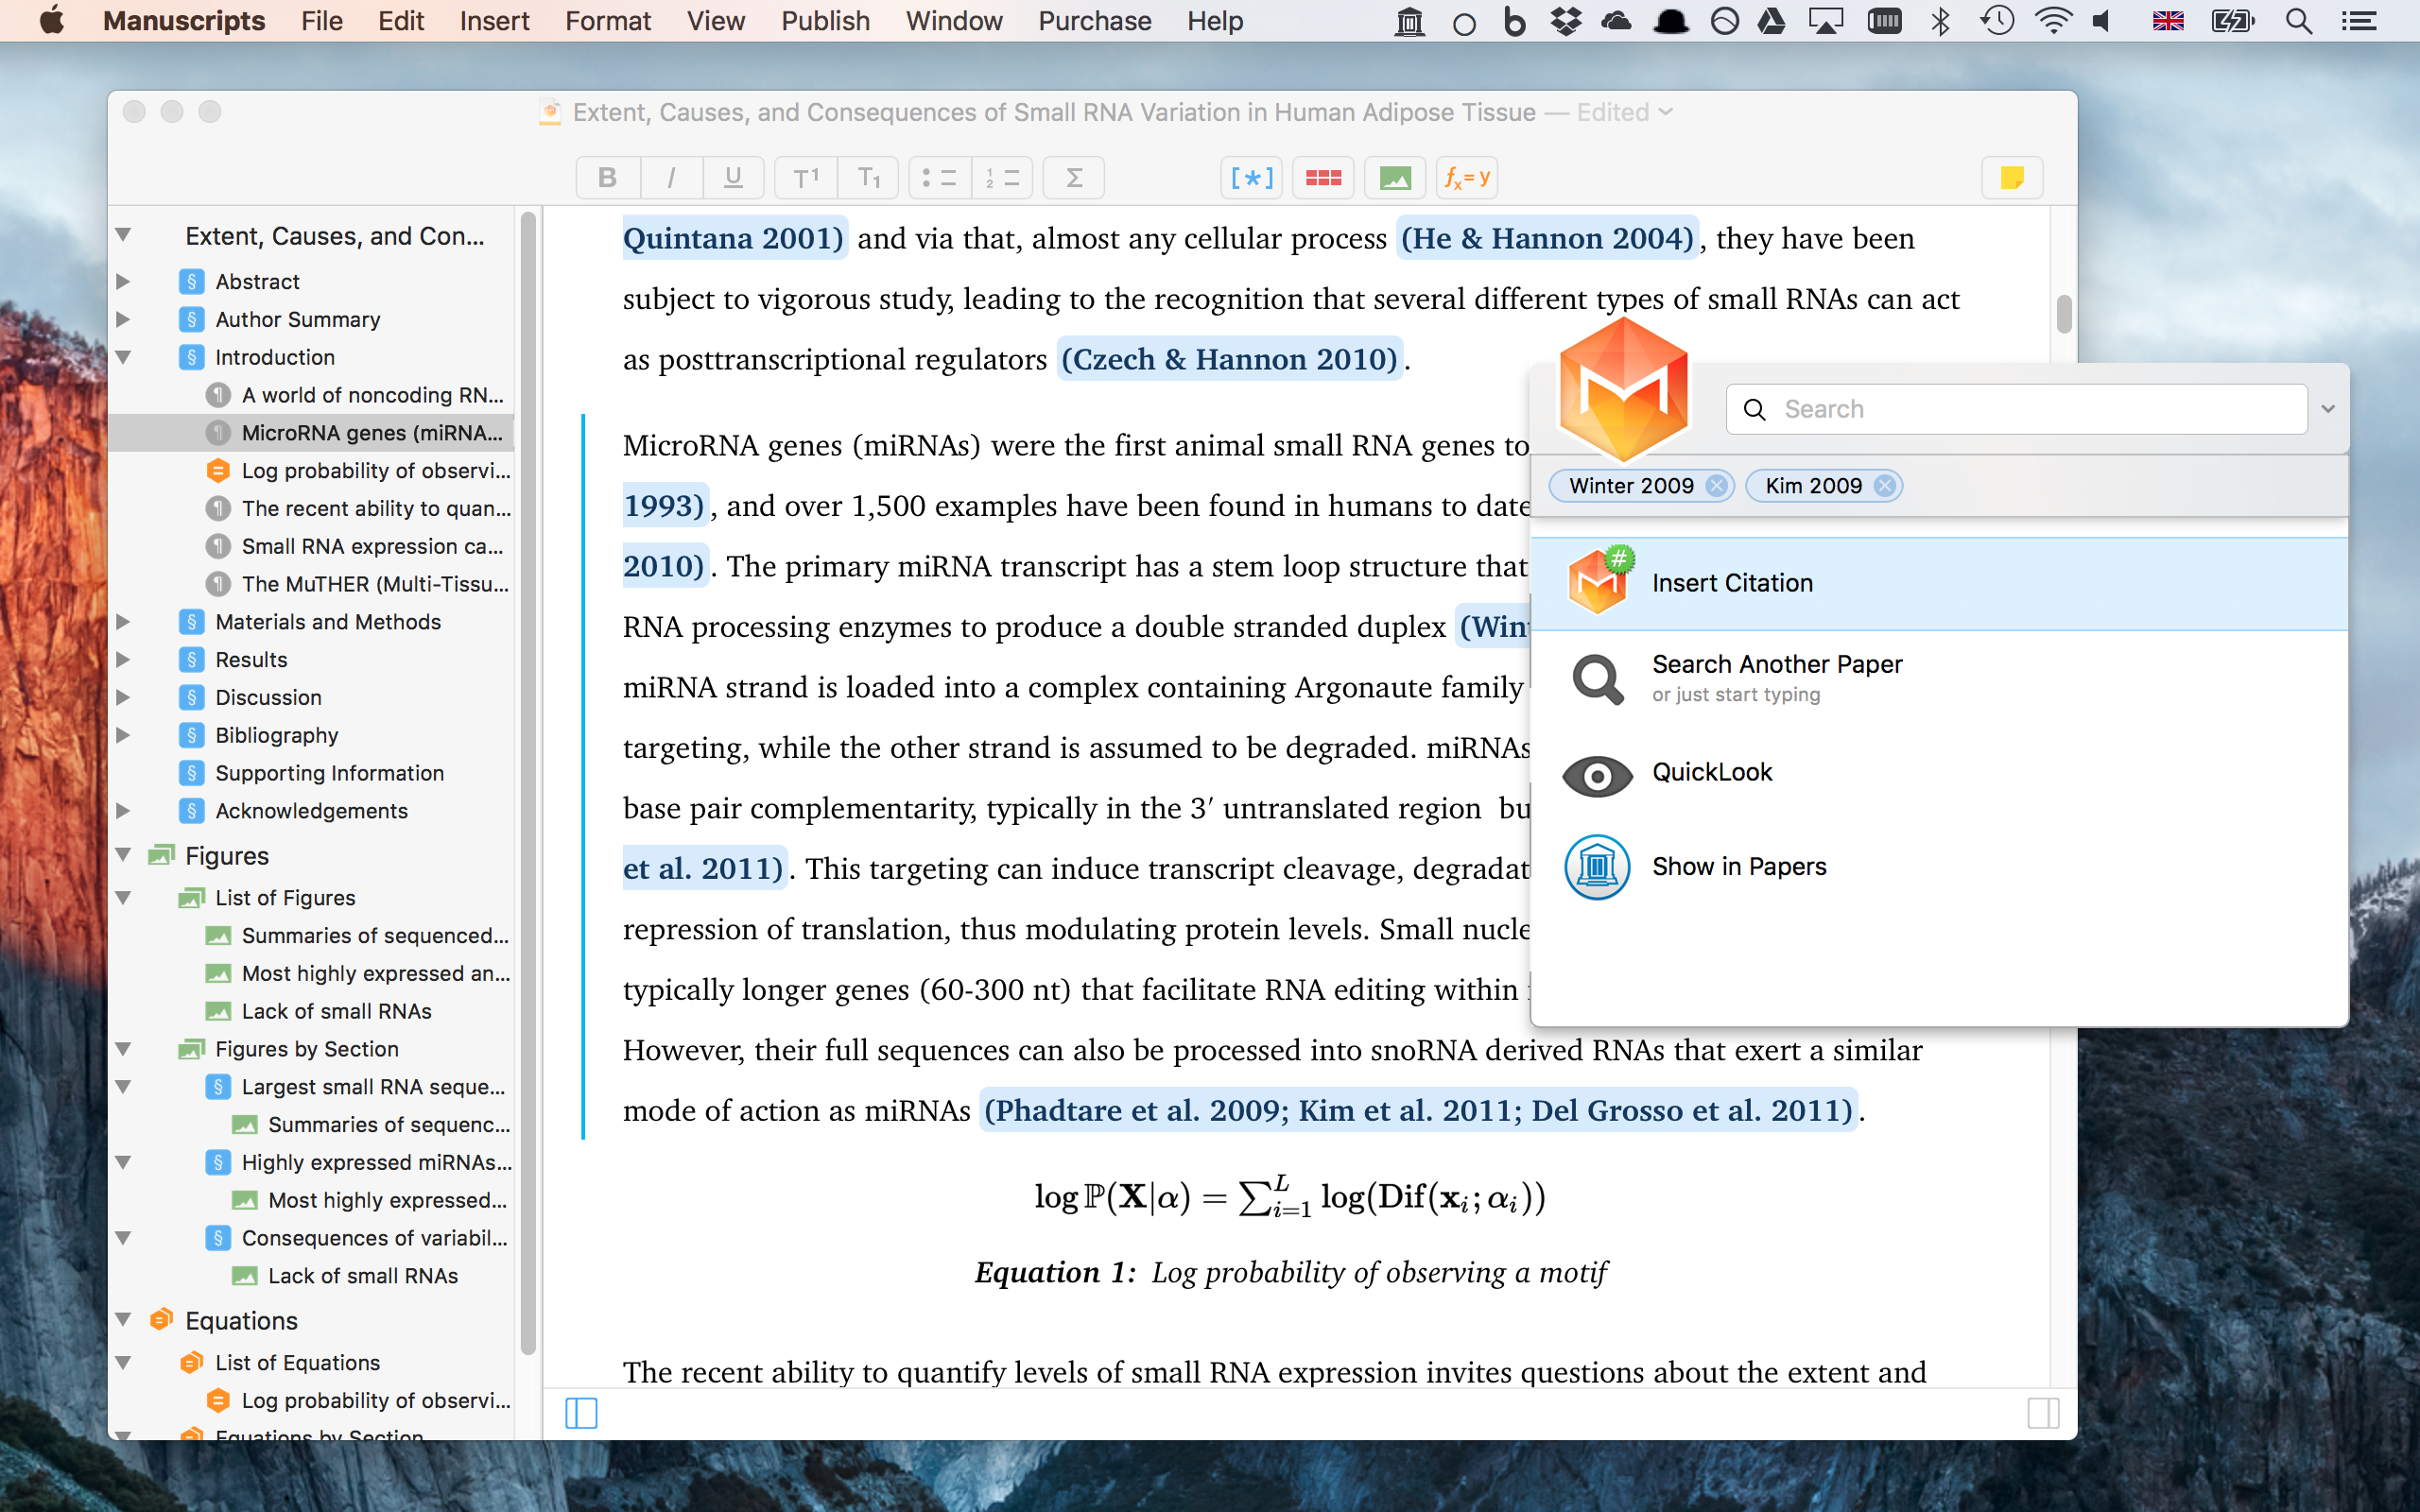 how to add citations in word on mac